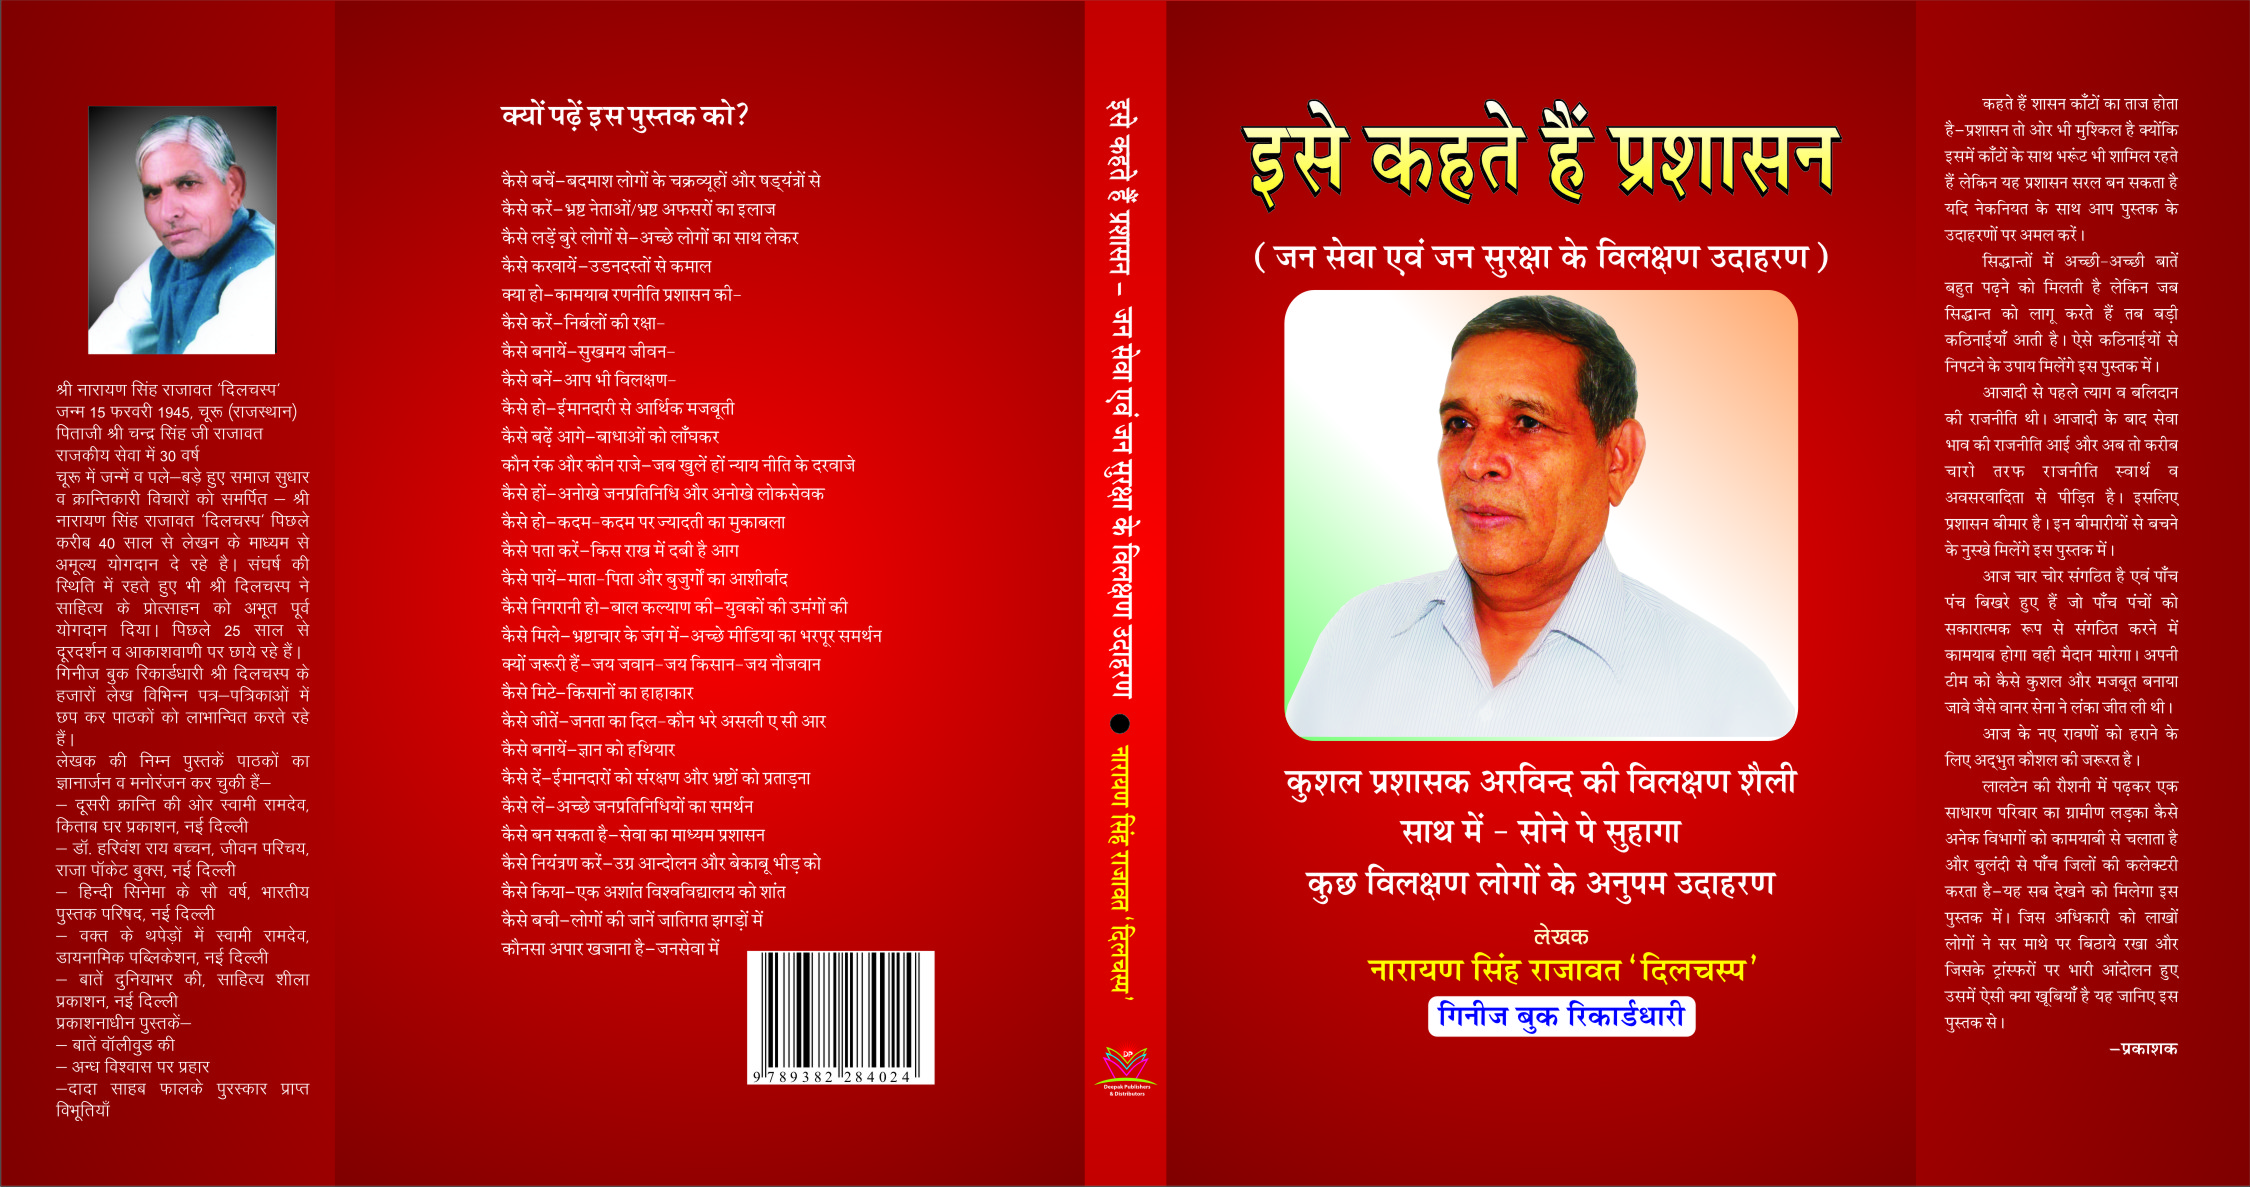 A biography written by Guienness Book of World Record holder Shri narayan Singh Rajawat 'Dilchasp.' The book contains excerpts from the administrative and other reforms introduced by Shri RN Arvind. A worth buy for those in service or pursing govt job